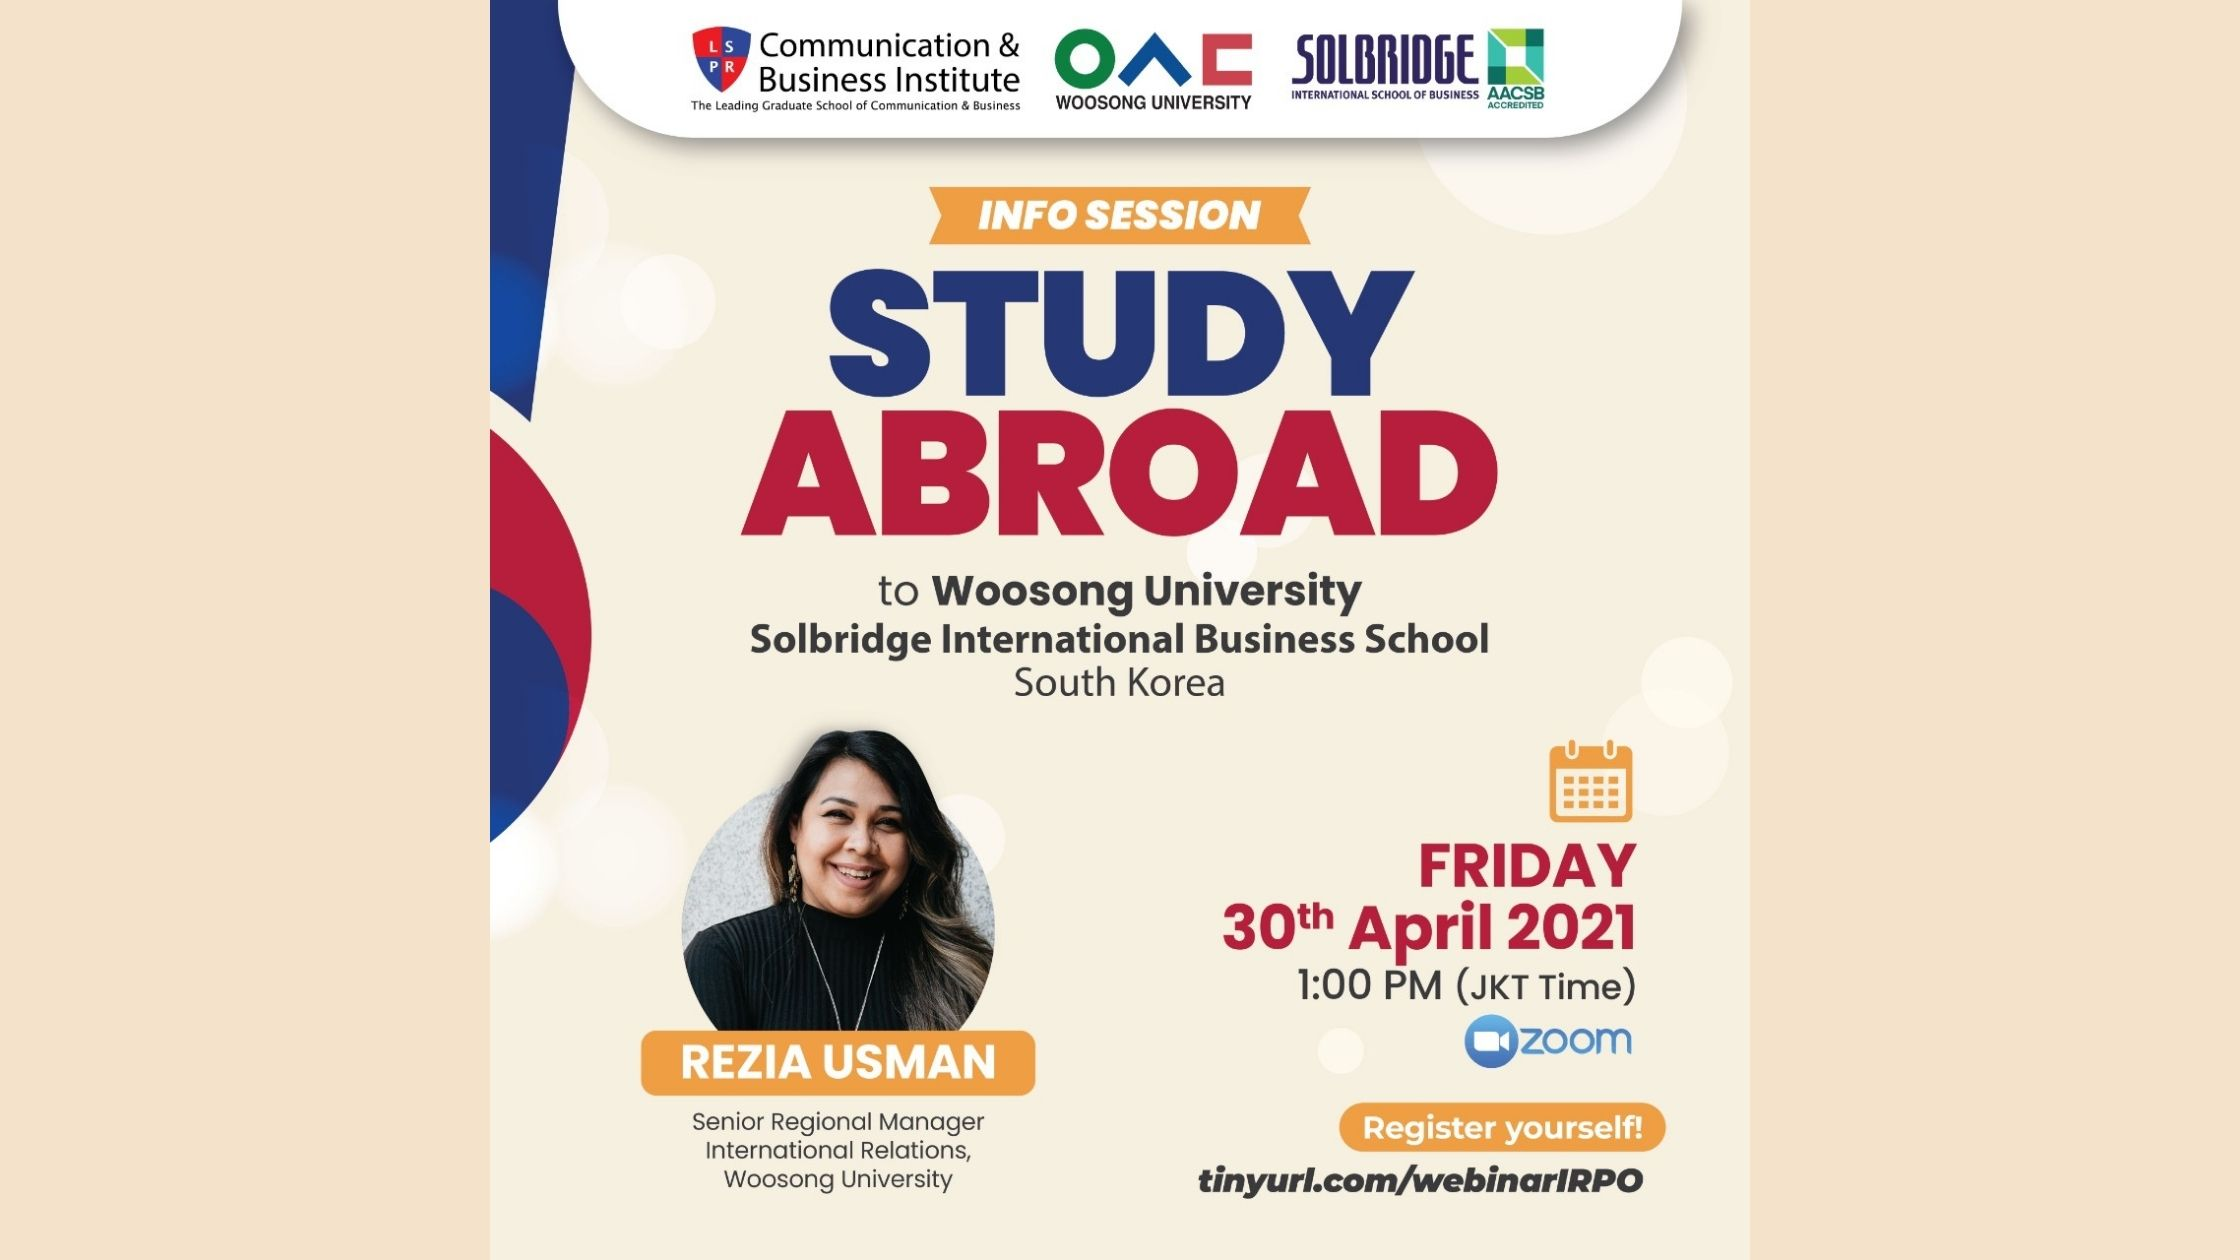 [UPDATE] Info Session with Woosong University